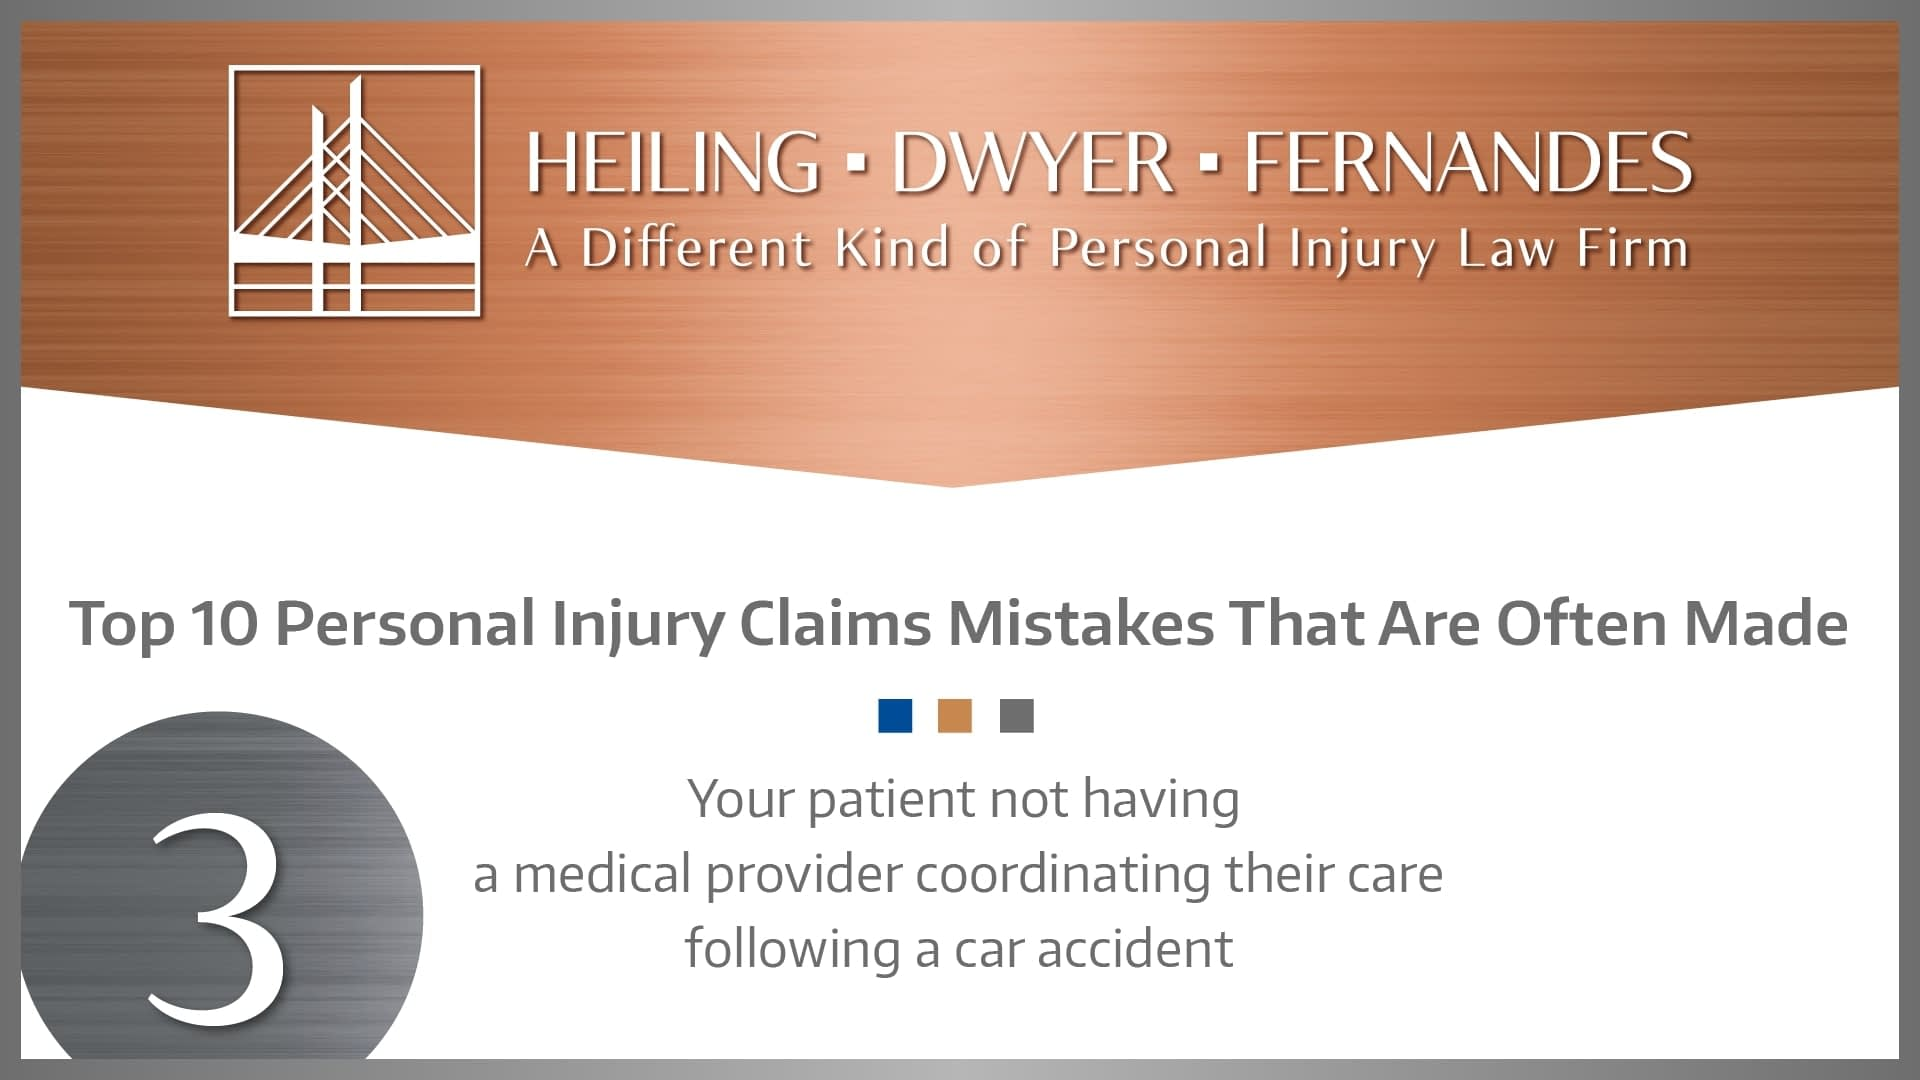 #3 MISTAKE: Your patient not having a medical provider coordinating their care following an accident